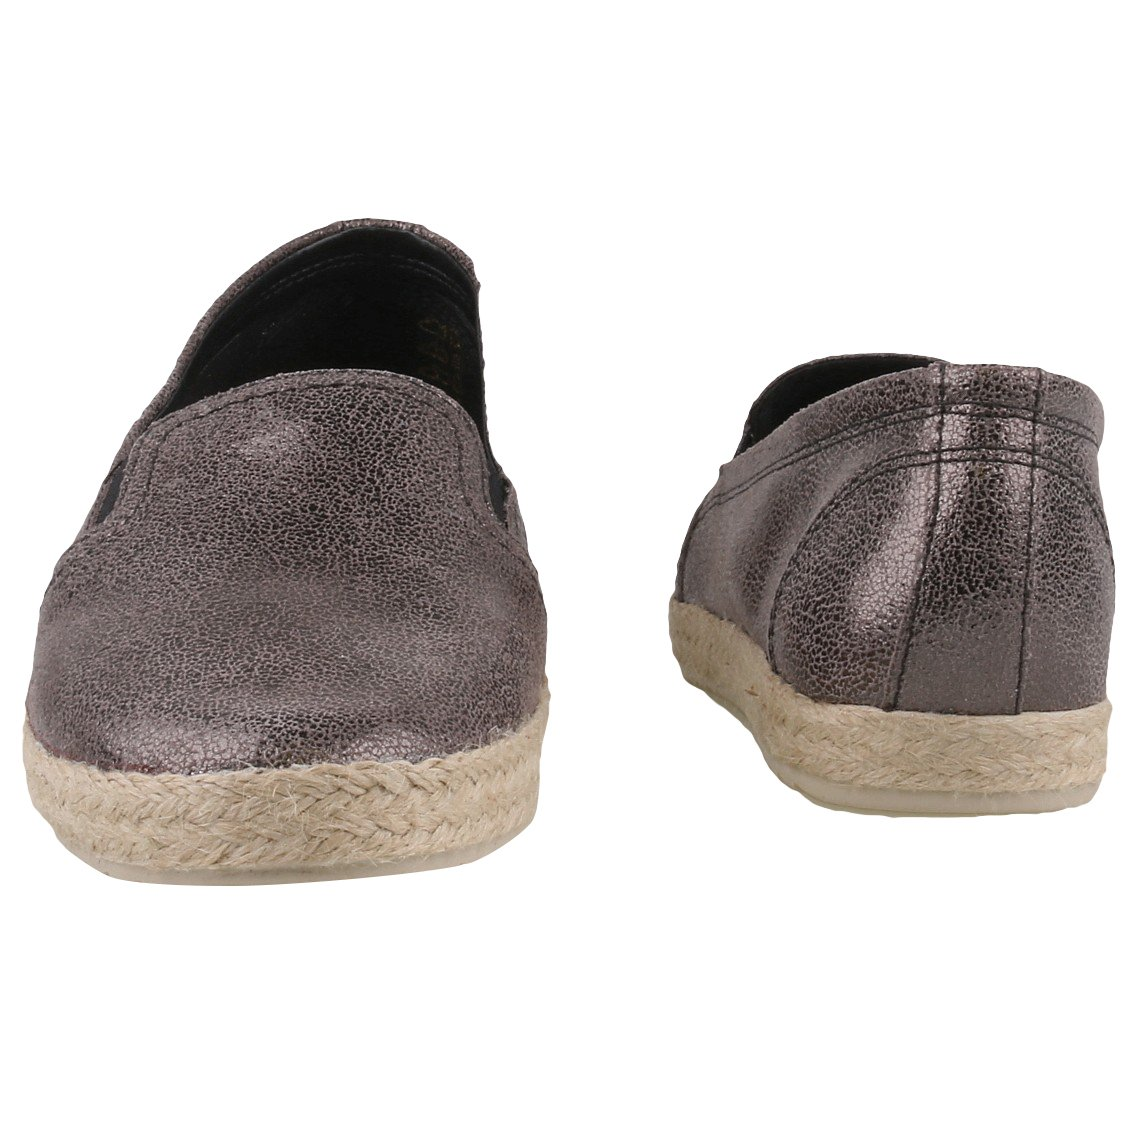 Tamaris - Damen Leder Slipper Anthrazit - Tamaris d3e714